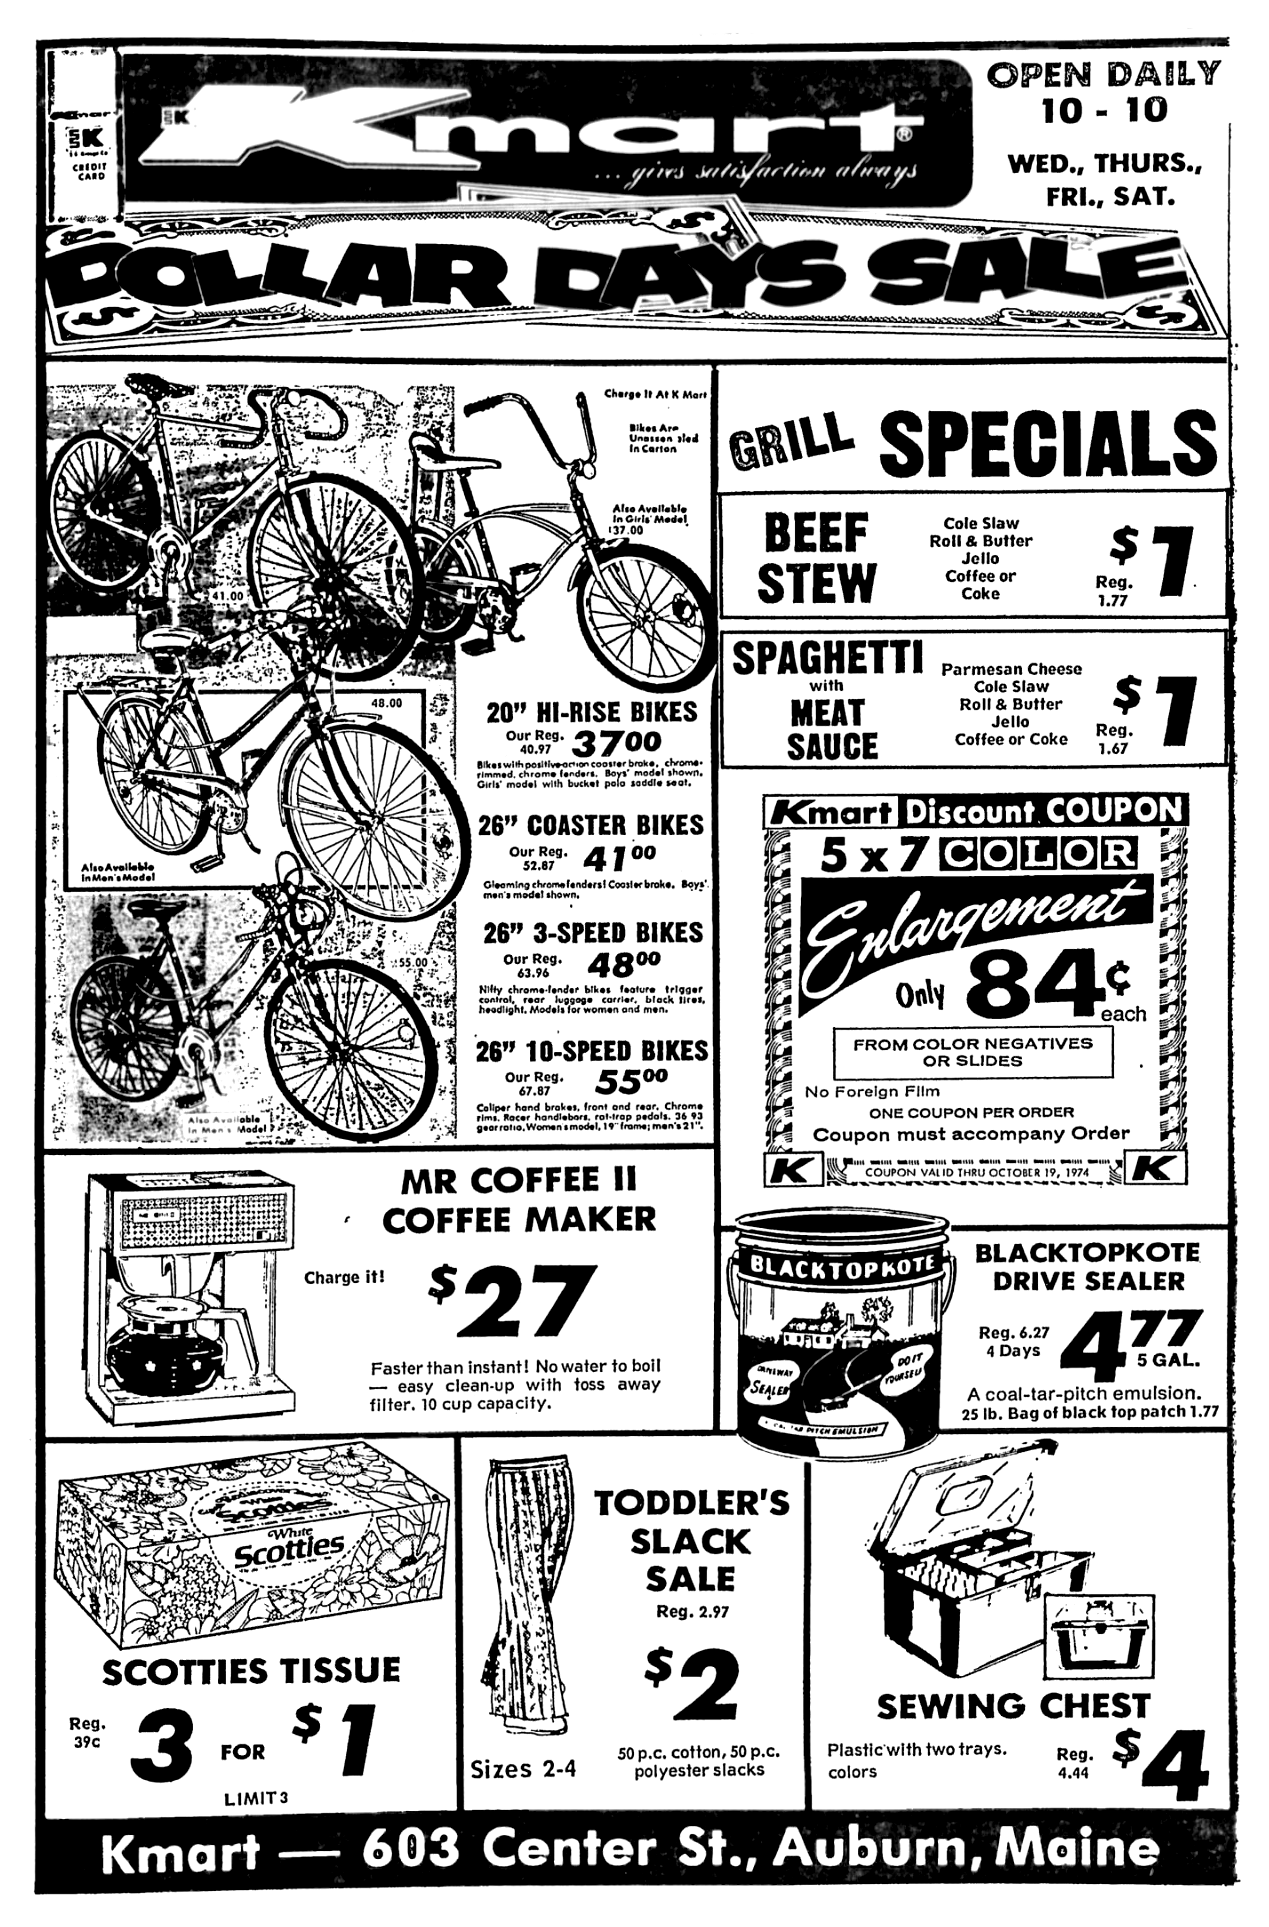 Kmart September 1974 Grill Specials Photo Developing Bicycles Mr Coffee Vintage Advertisements Vintage Ads Mr Coffee